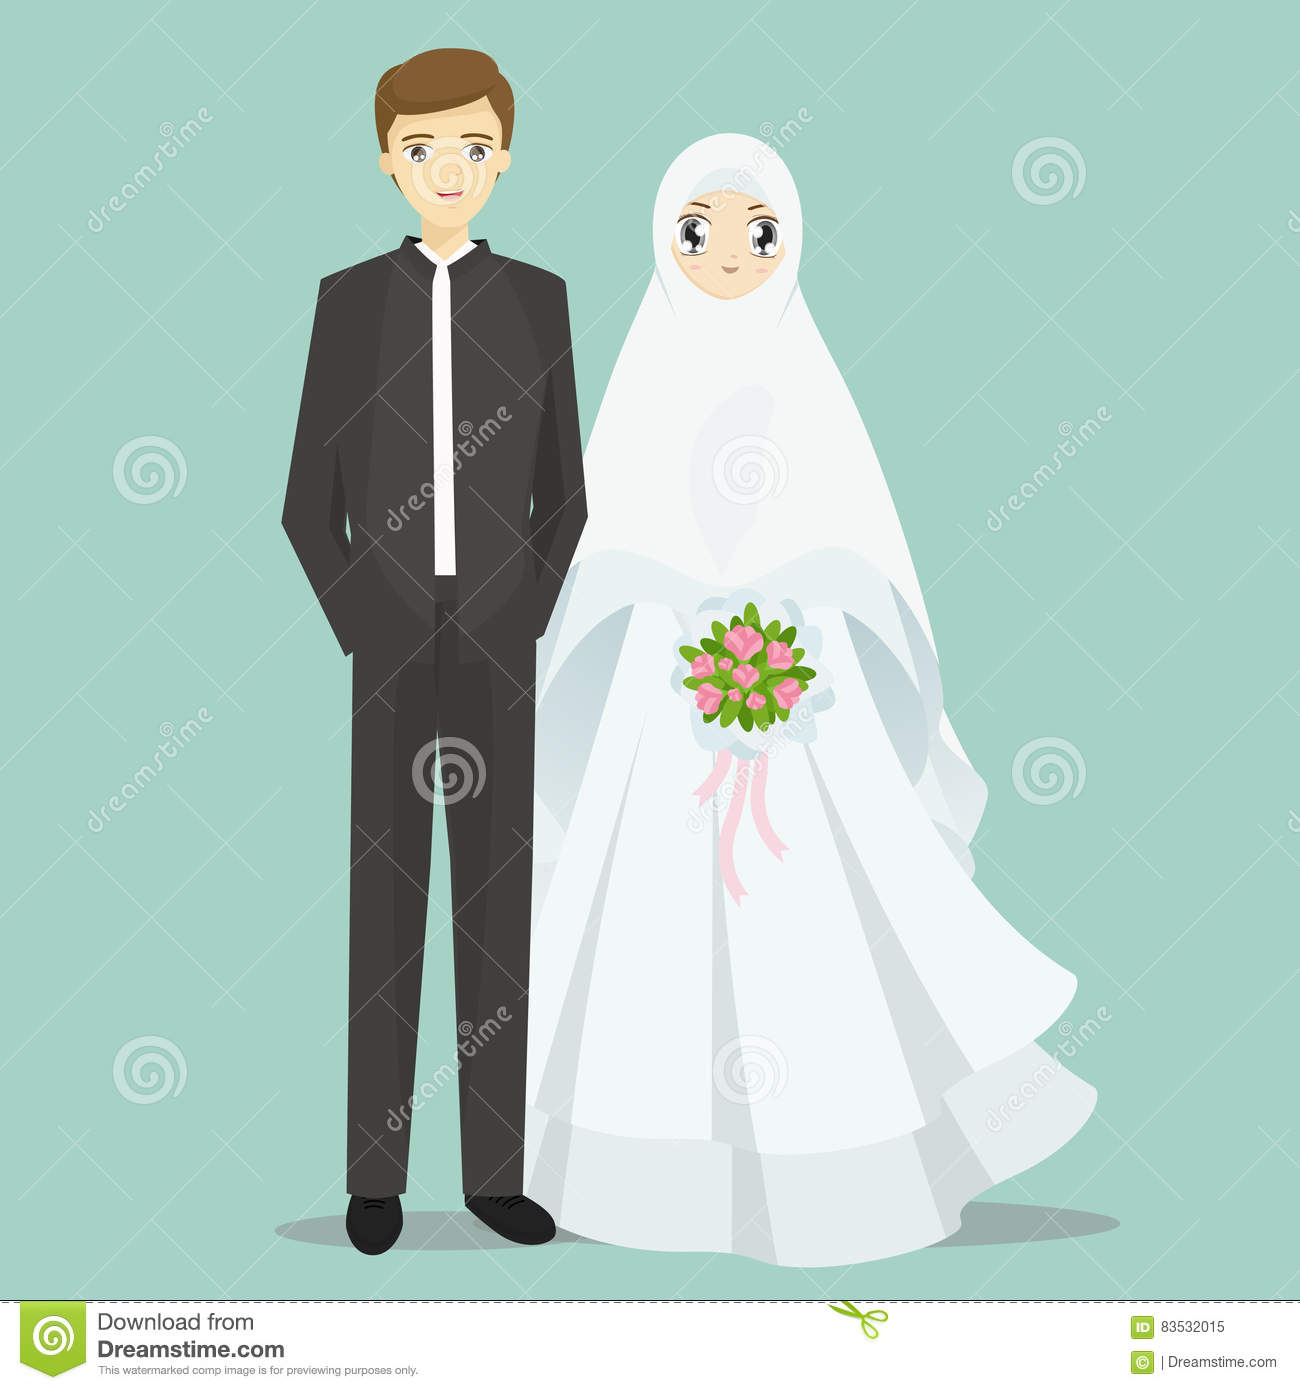 Muslim Bride Groom Stock Illustrations – 43 Muslim Bride Groom Stock ...